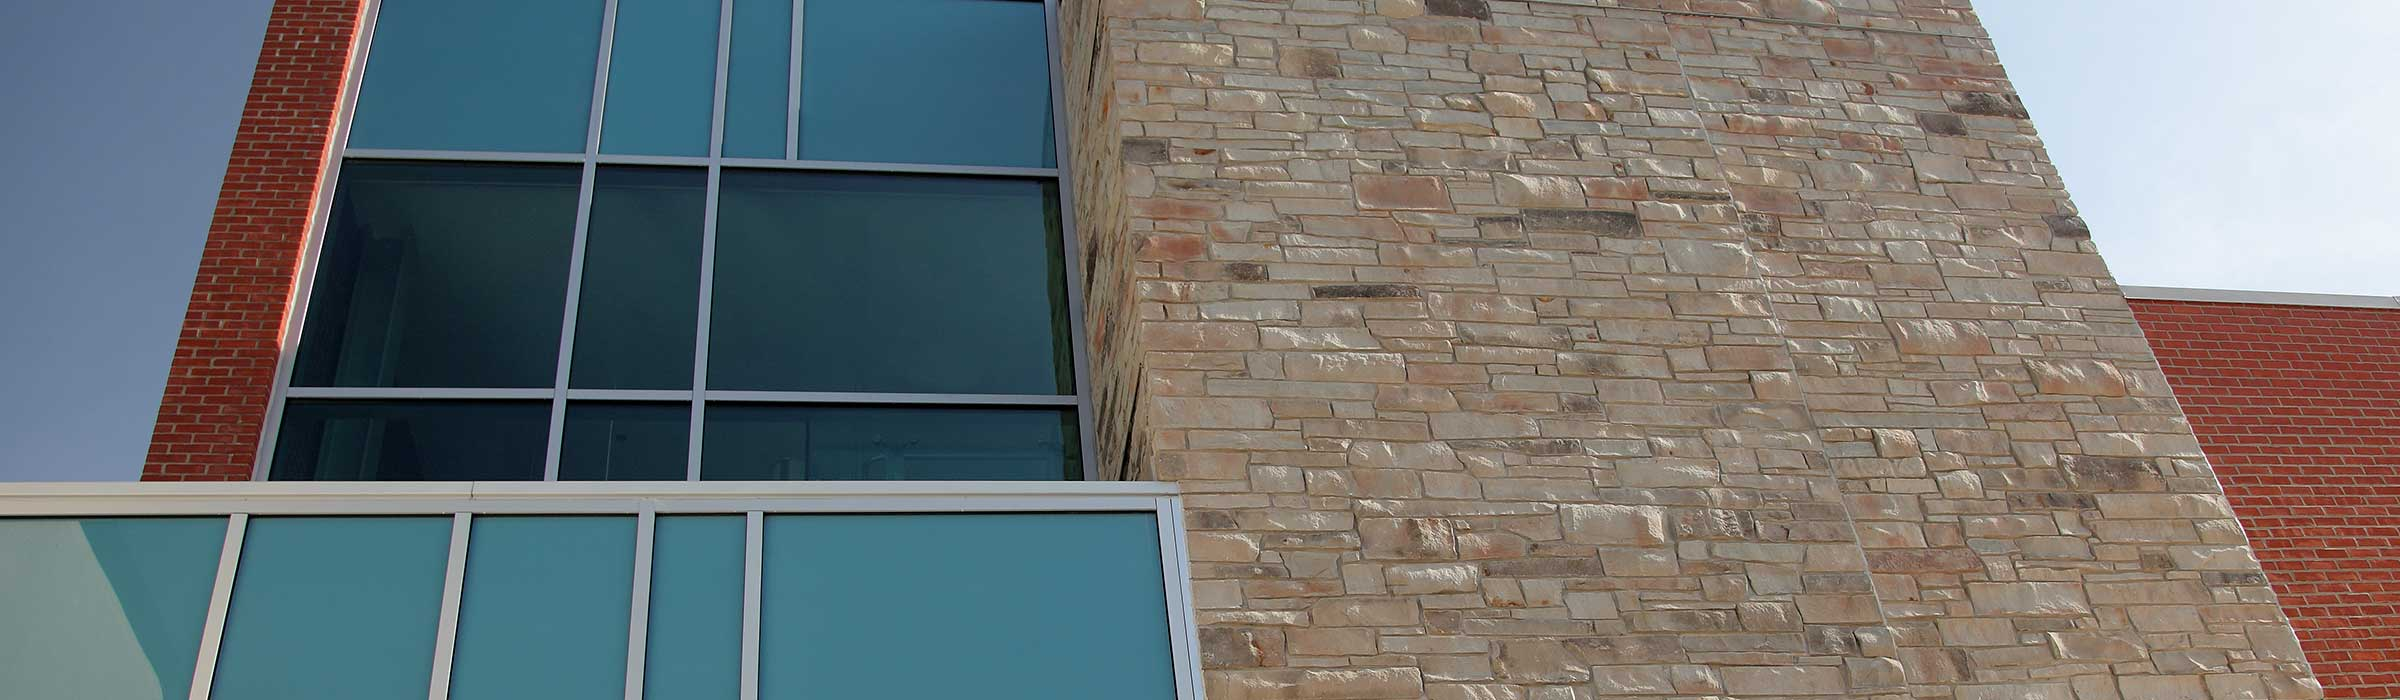 Credit Valley sandstone, paired with glass and brick